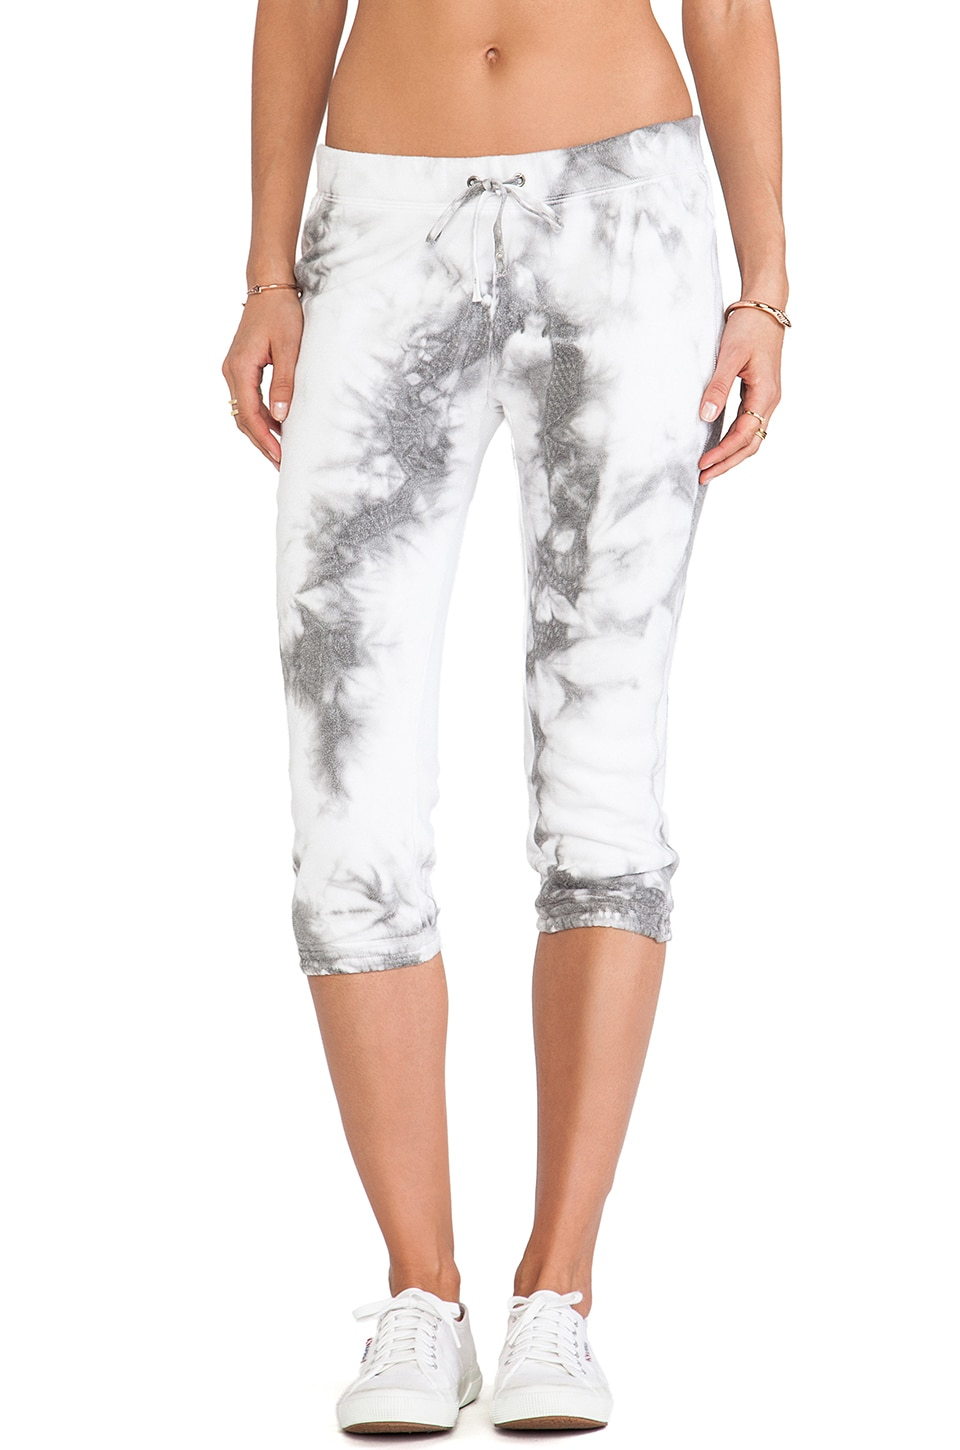 Pam & Gela Knee Crop Pant in Tie Dye Grey